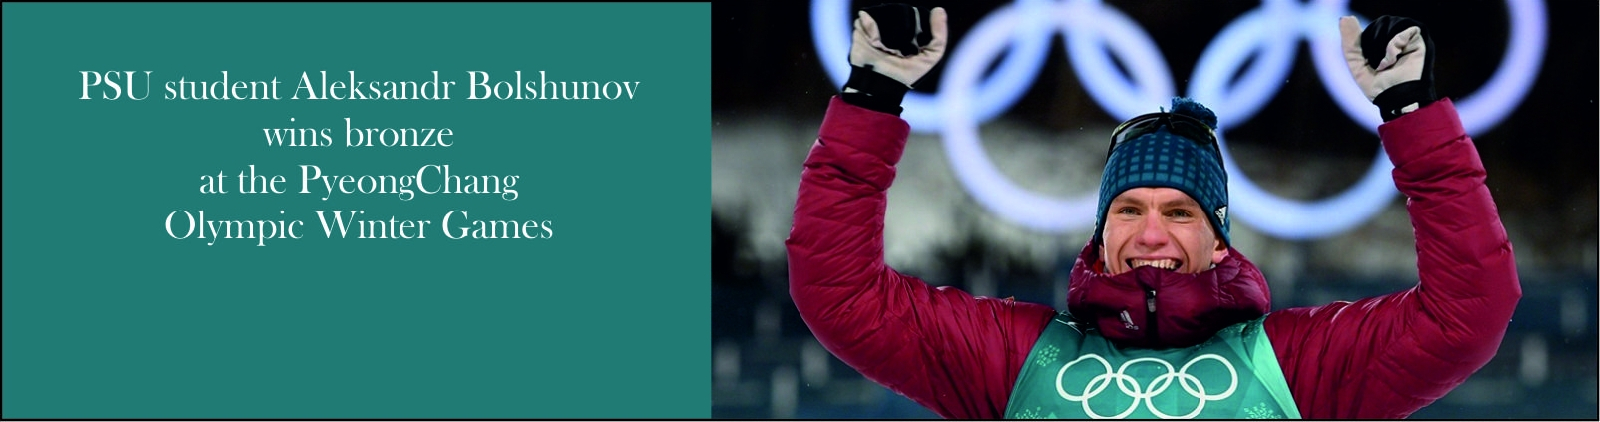 PSU student Aleksandr Bolshunov wins bronze at the PyeongChang Olympic Winter Games